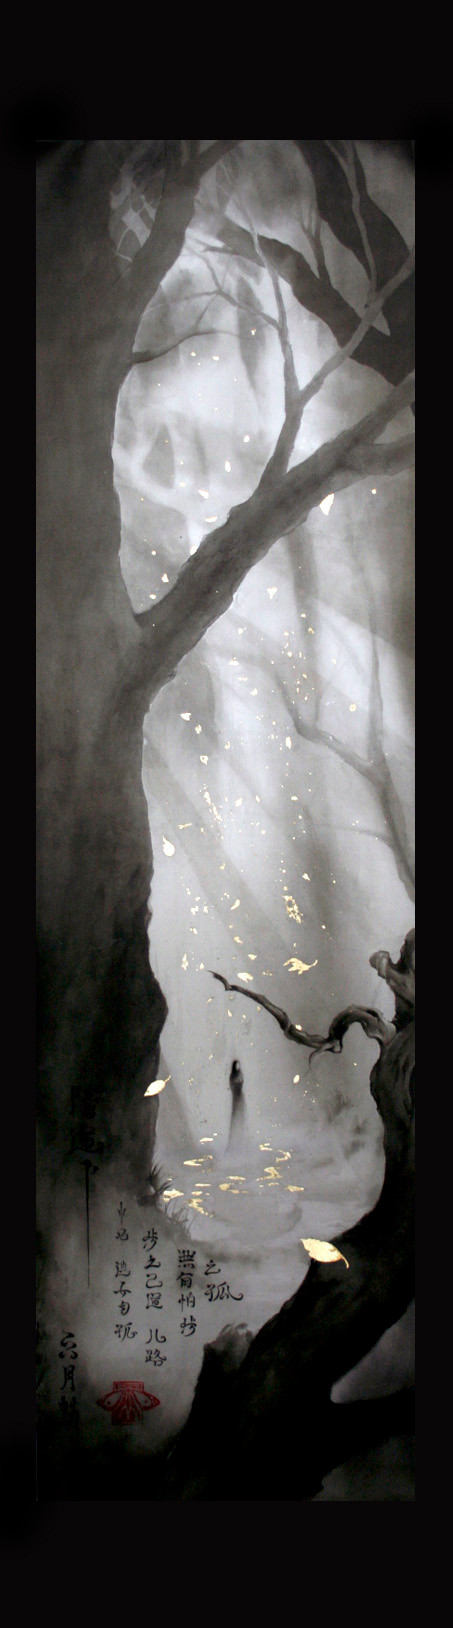 Lonesome Ghost - atmospheric fantasy paintings in watercolor & ink by sebastian rutkowski - moonlight-art - original asian silk scroll for sale